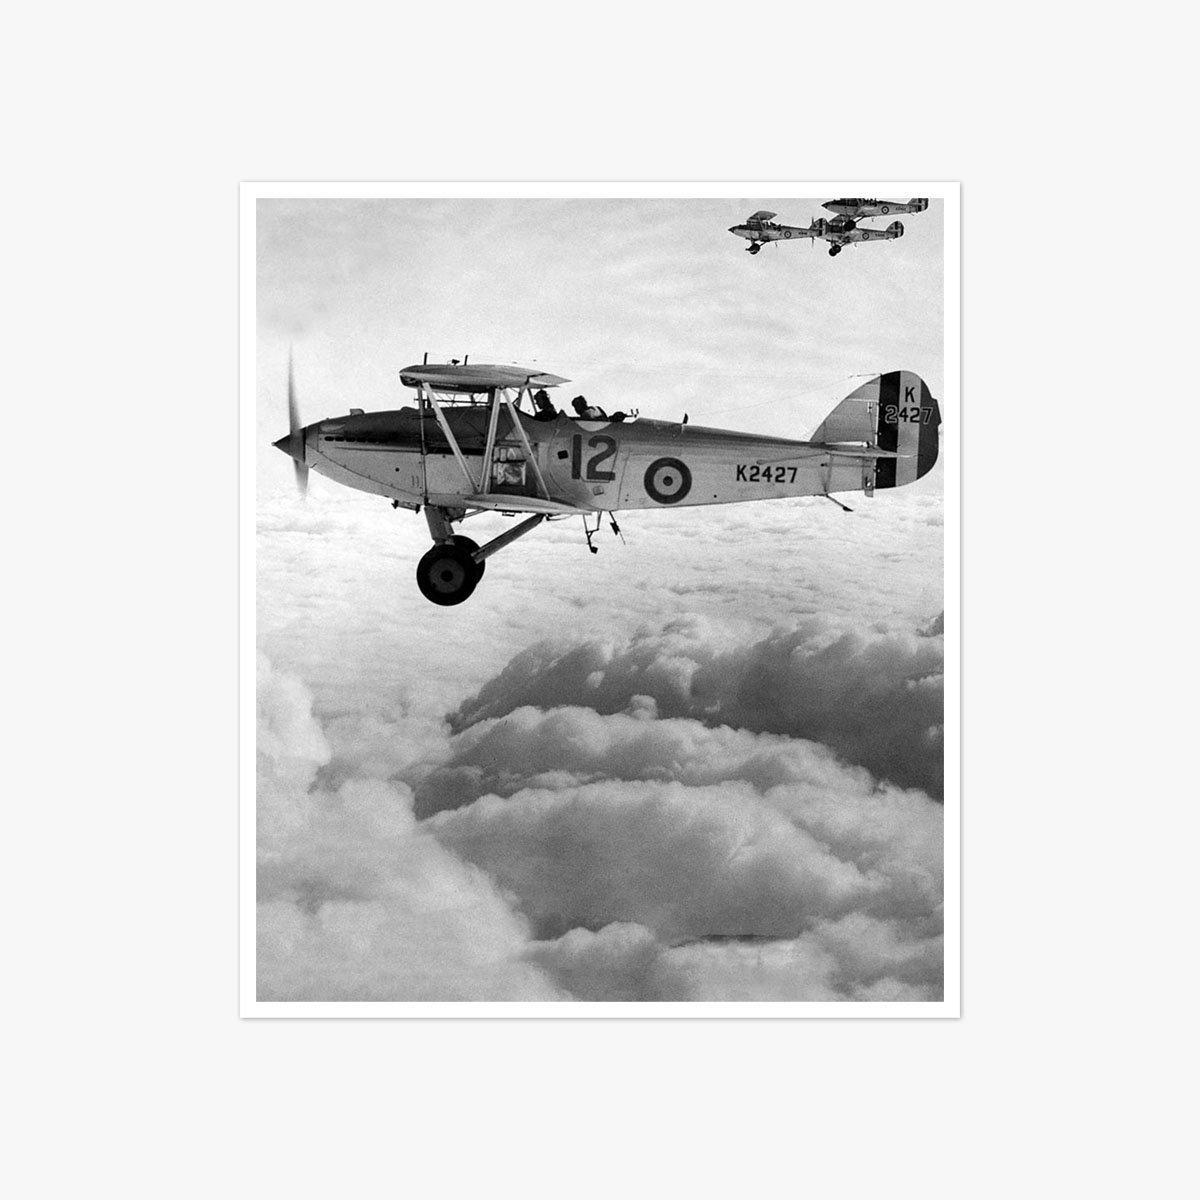 Hawker Hart bomber aircraft by Frank Rust